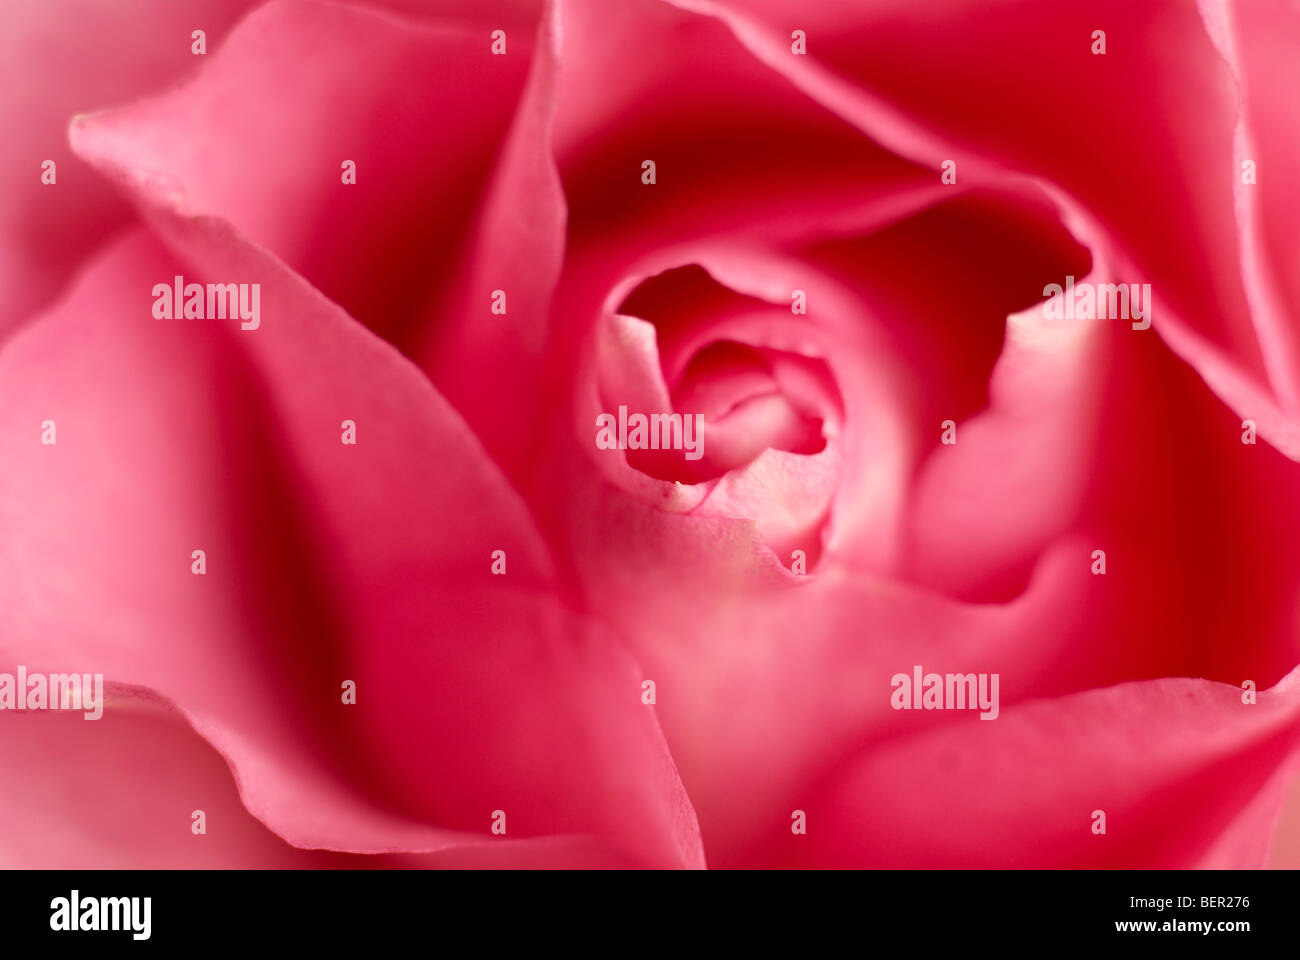 Pink rose, rose bud, petals, pink, red, flowers, flowers, macro, close-up, close up - Stock Image